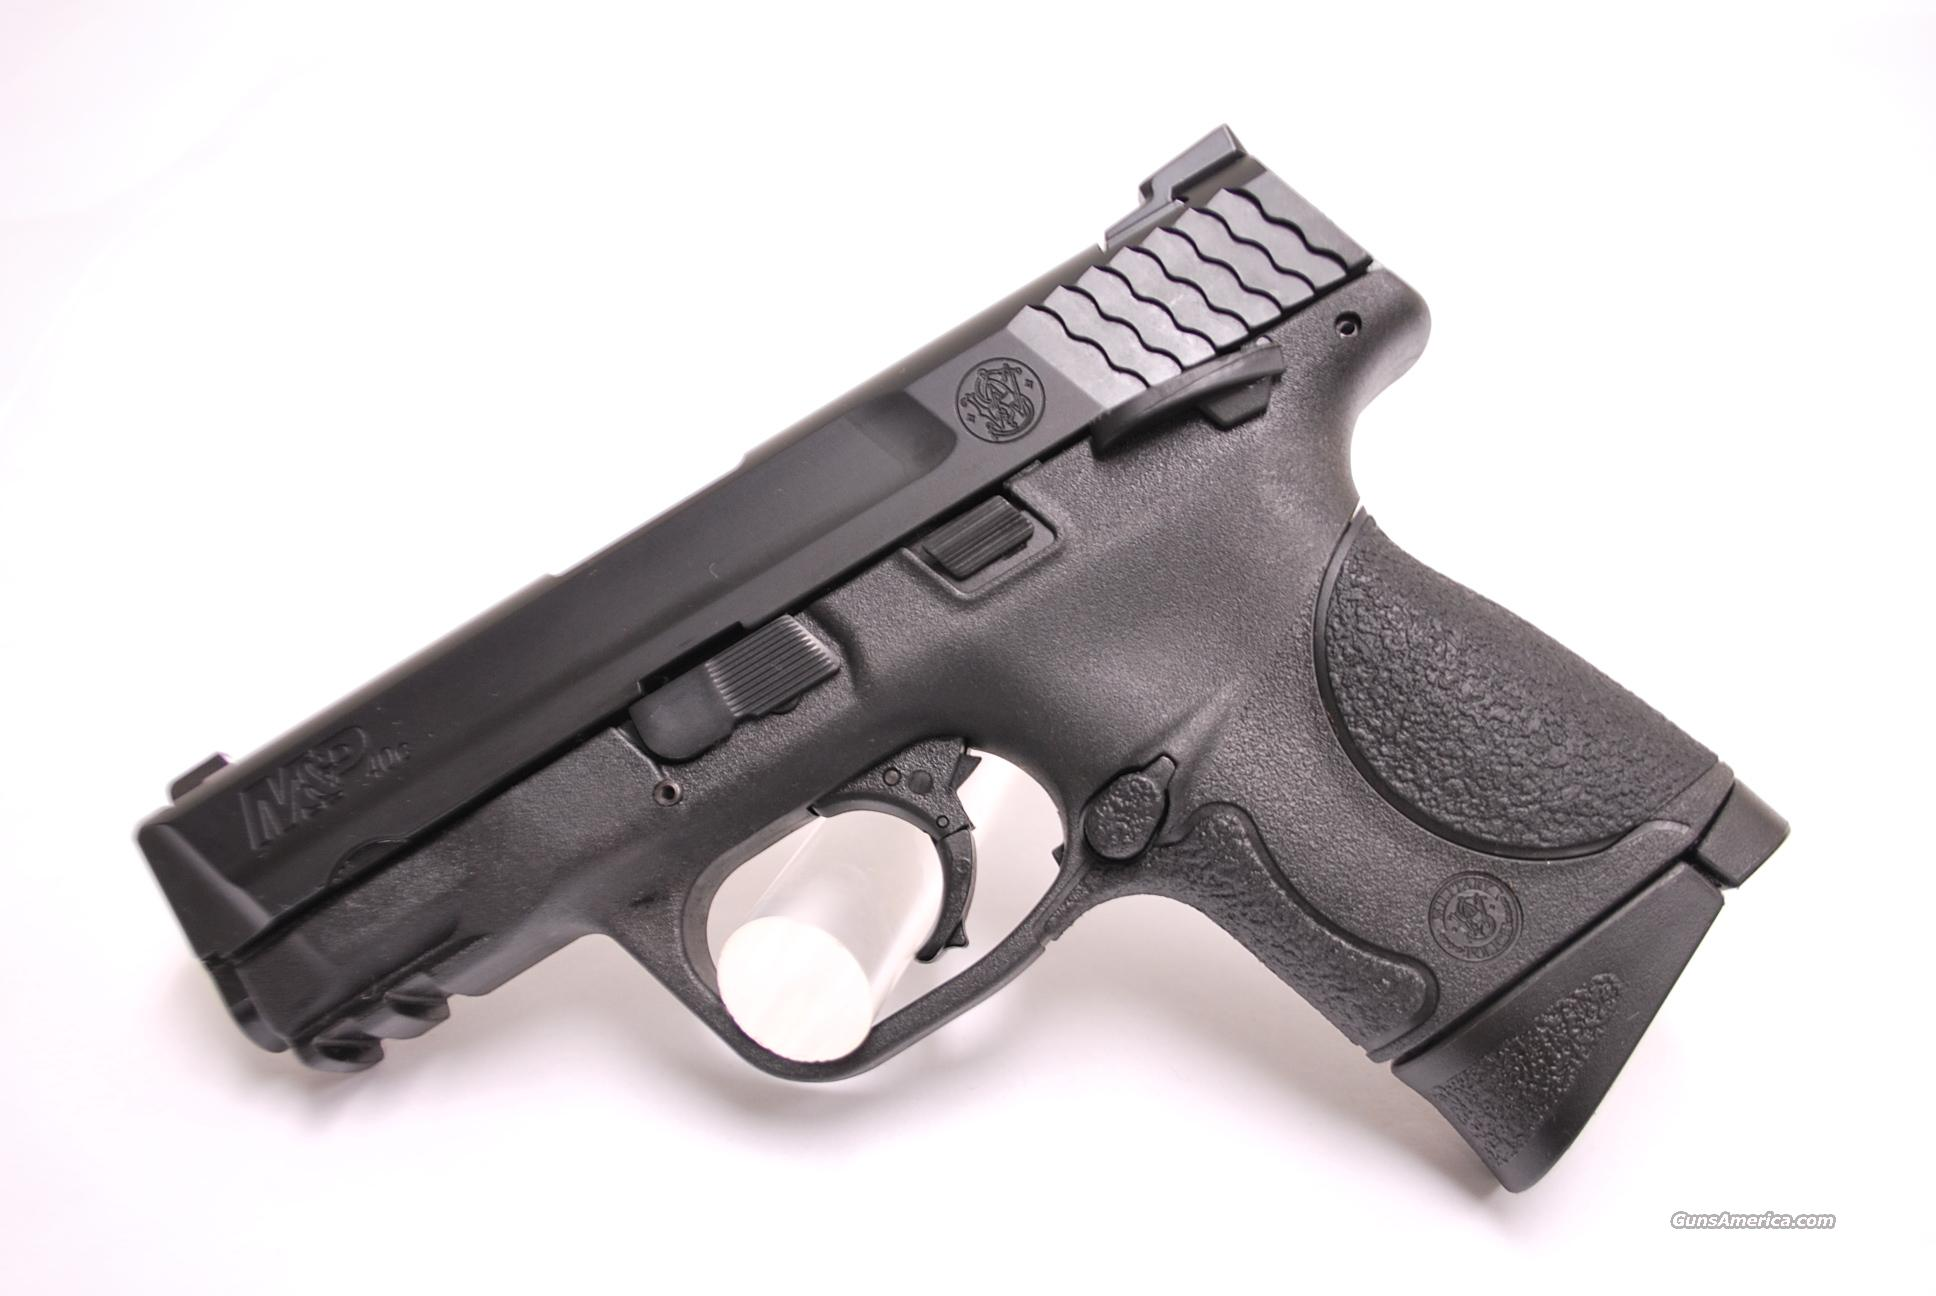 Smith & Wesson M&P40C 40 S&W NEW M&P 40 SW  Guns > Pistols > Smith & Wesson Pistols - Autos > Polymer Frame